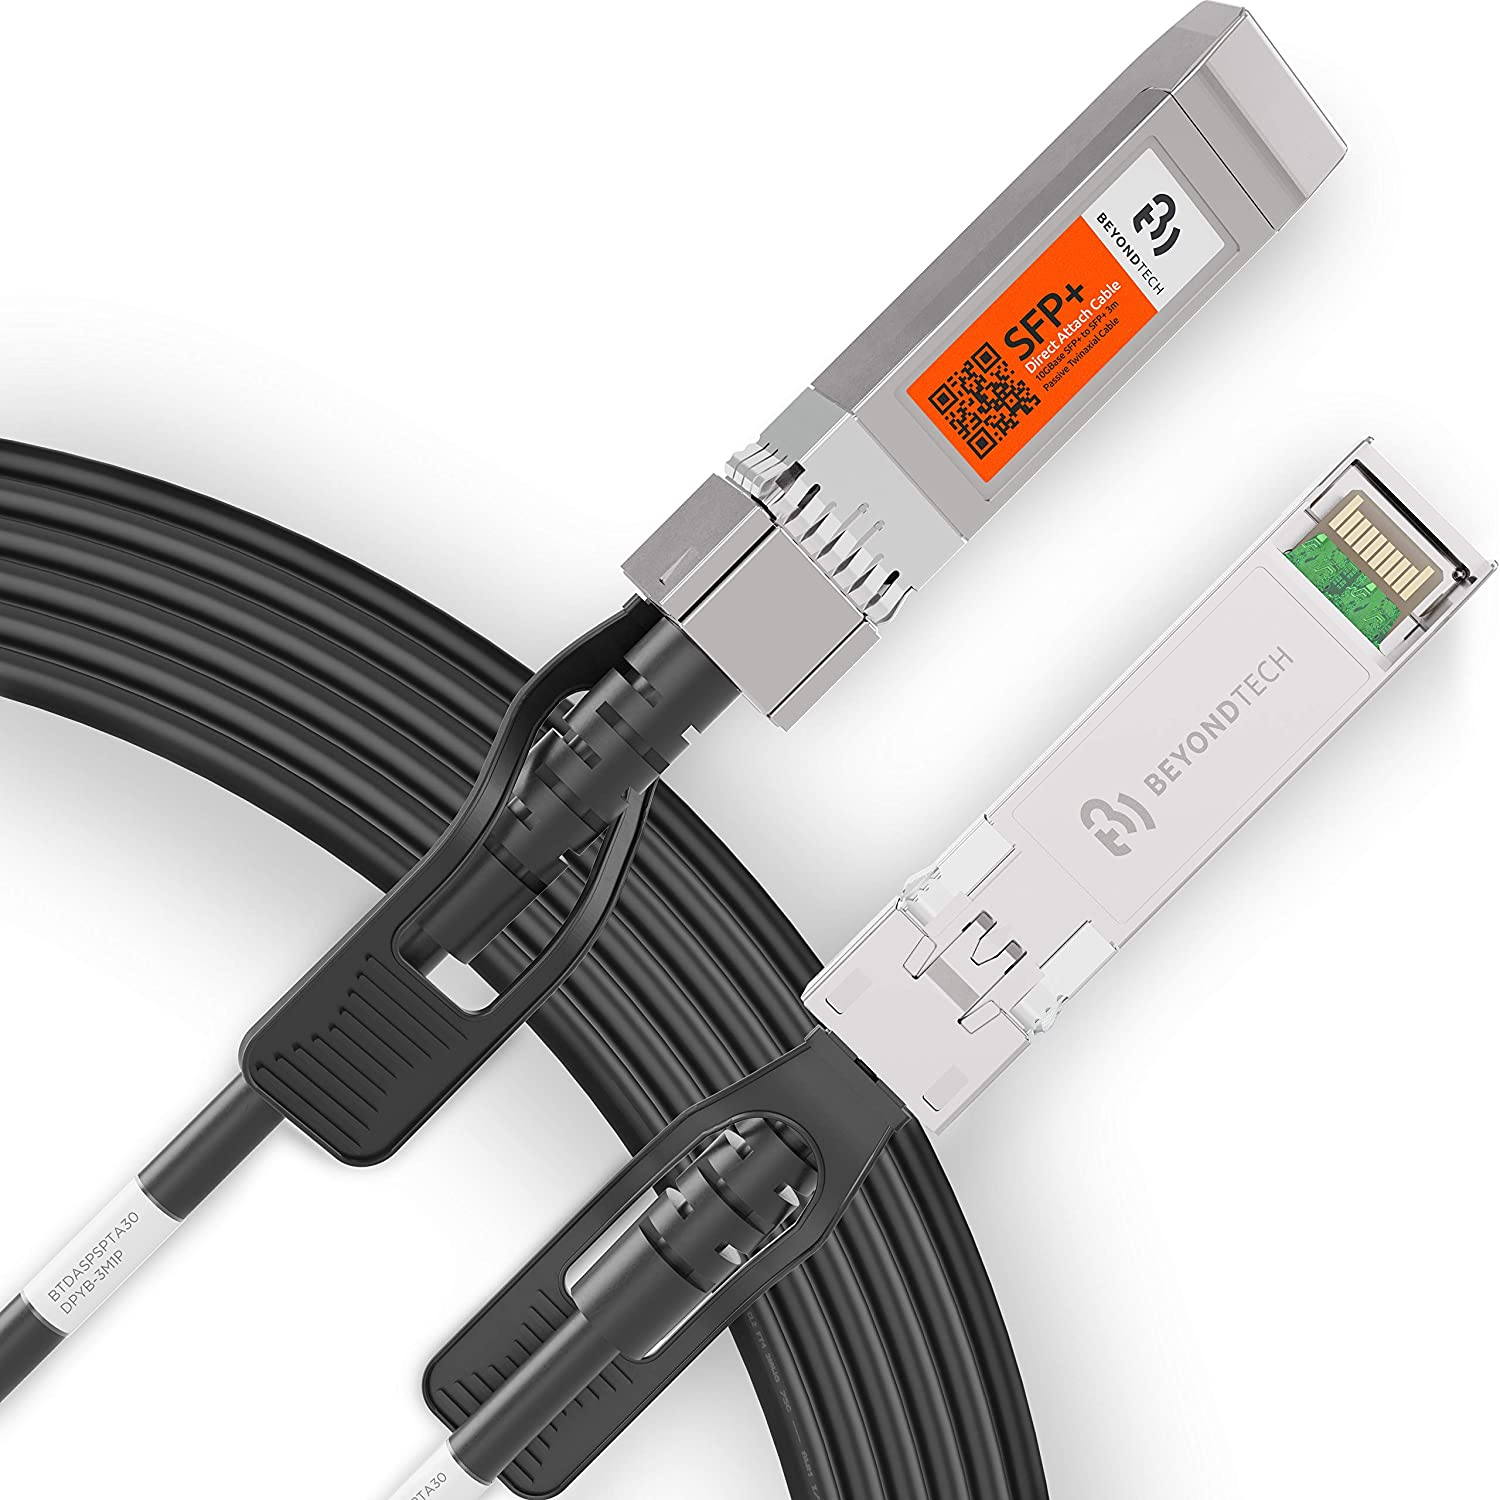 10G SFP+ Direct Attach Cable - 30 2021new shipping free 3 Outlet ☆ Free Shipping AWG Meters Twinax LSZH 3m